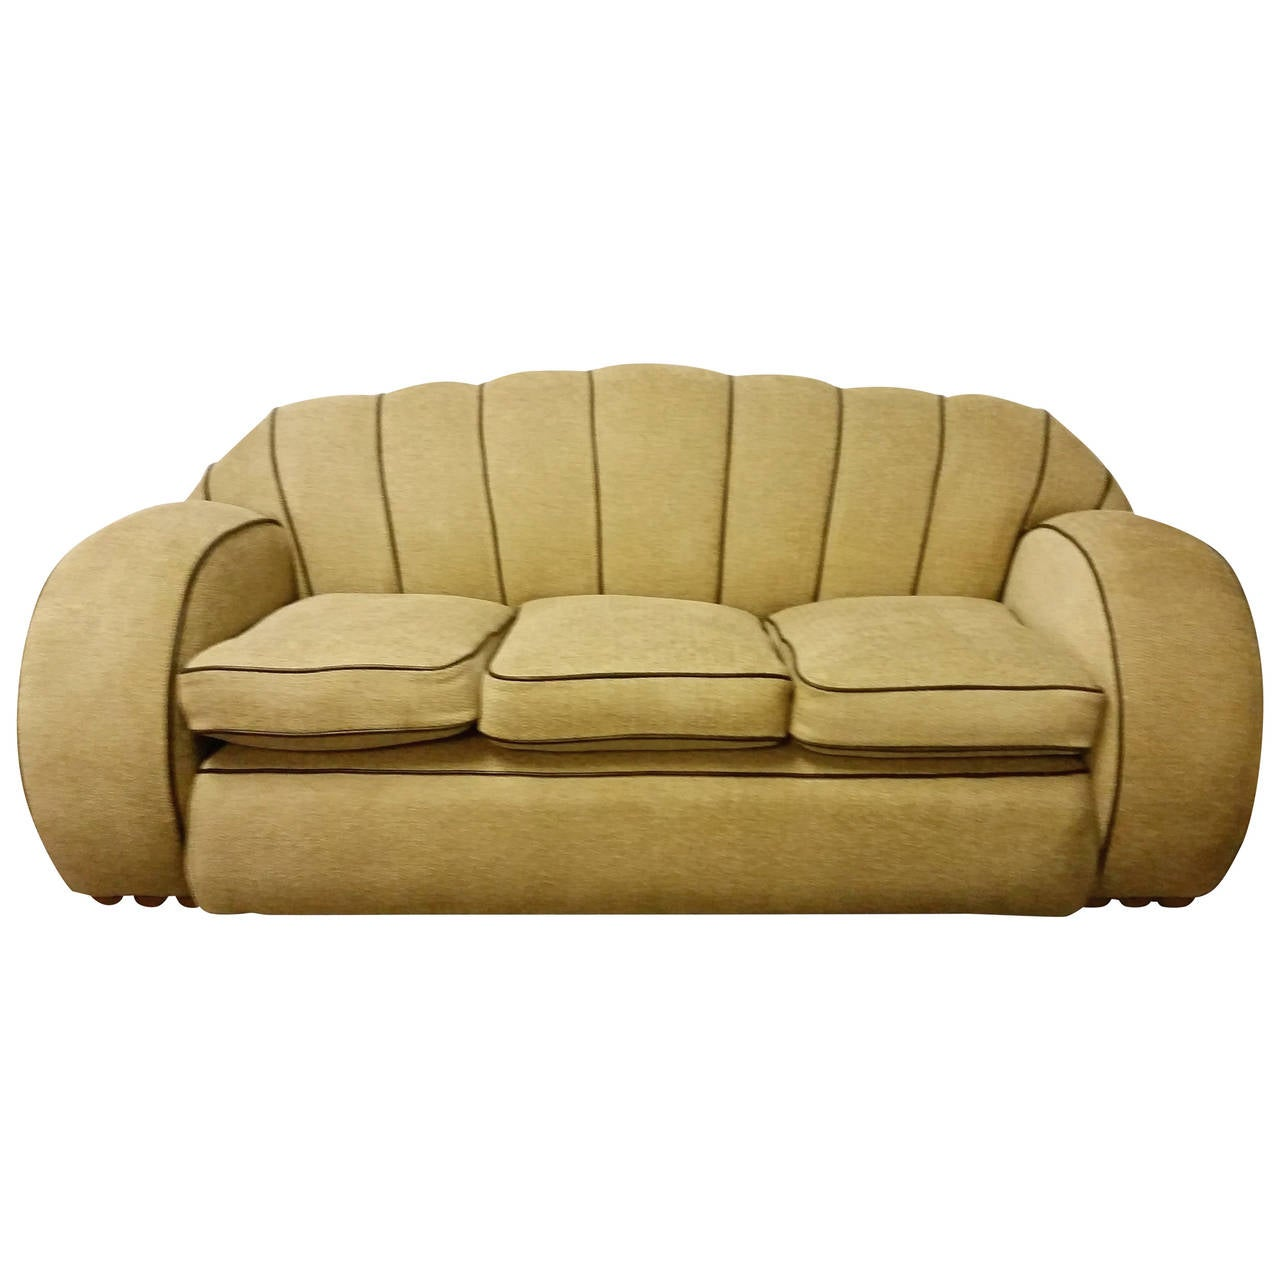 Awesome Art Deco Sofa For